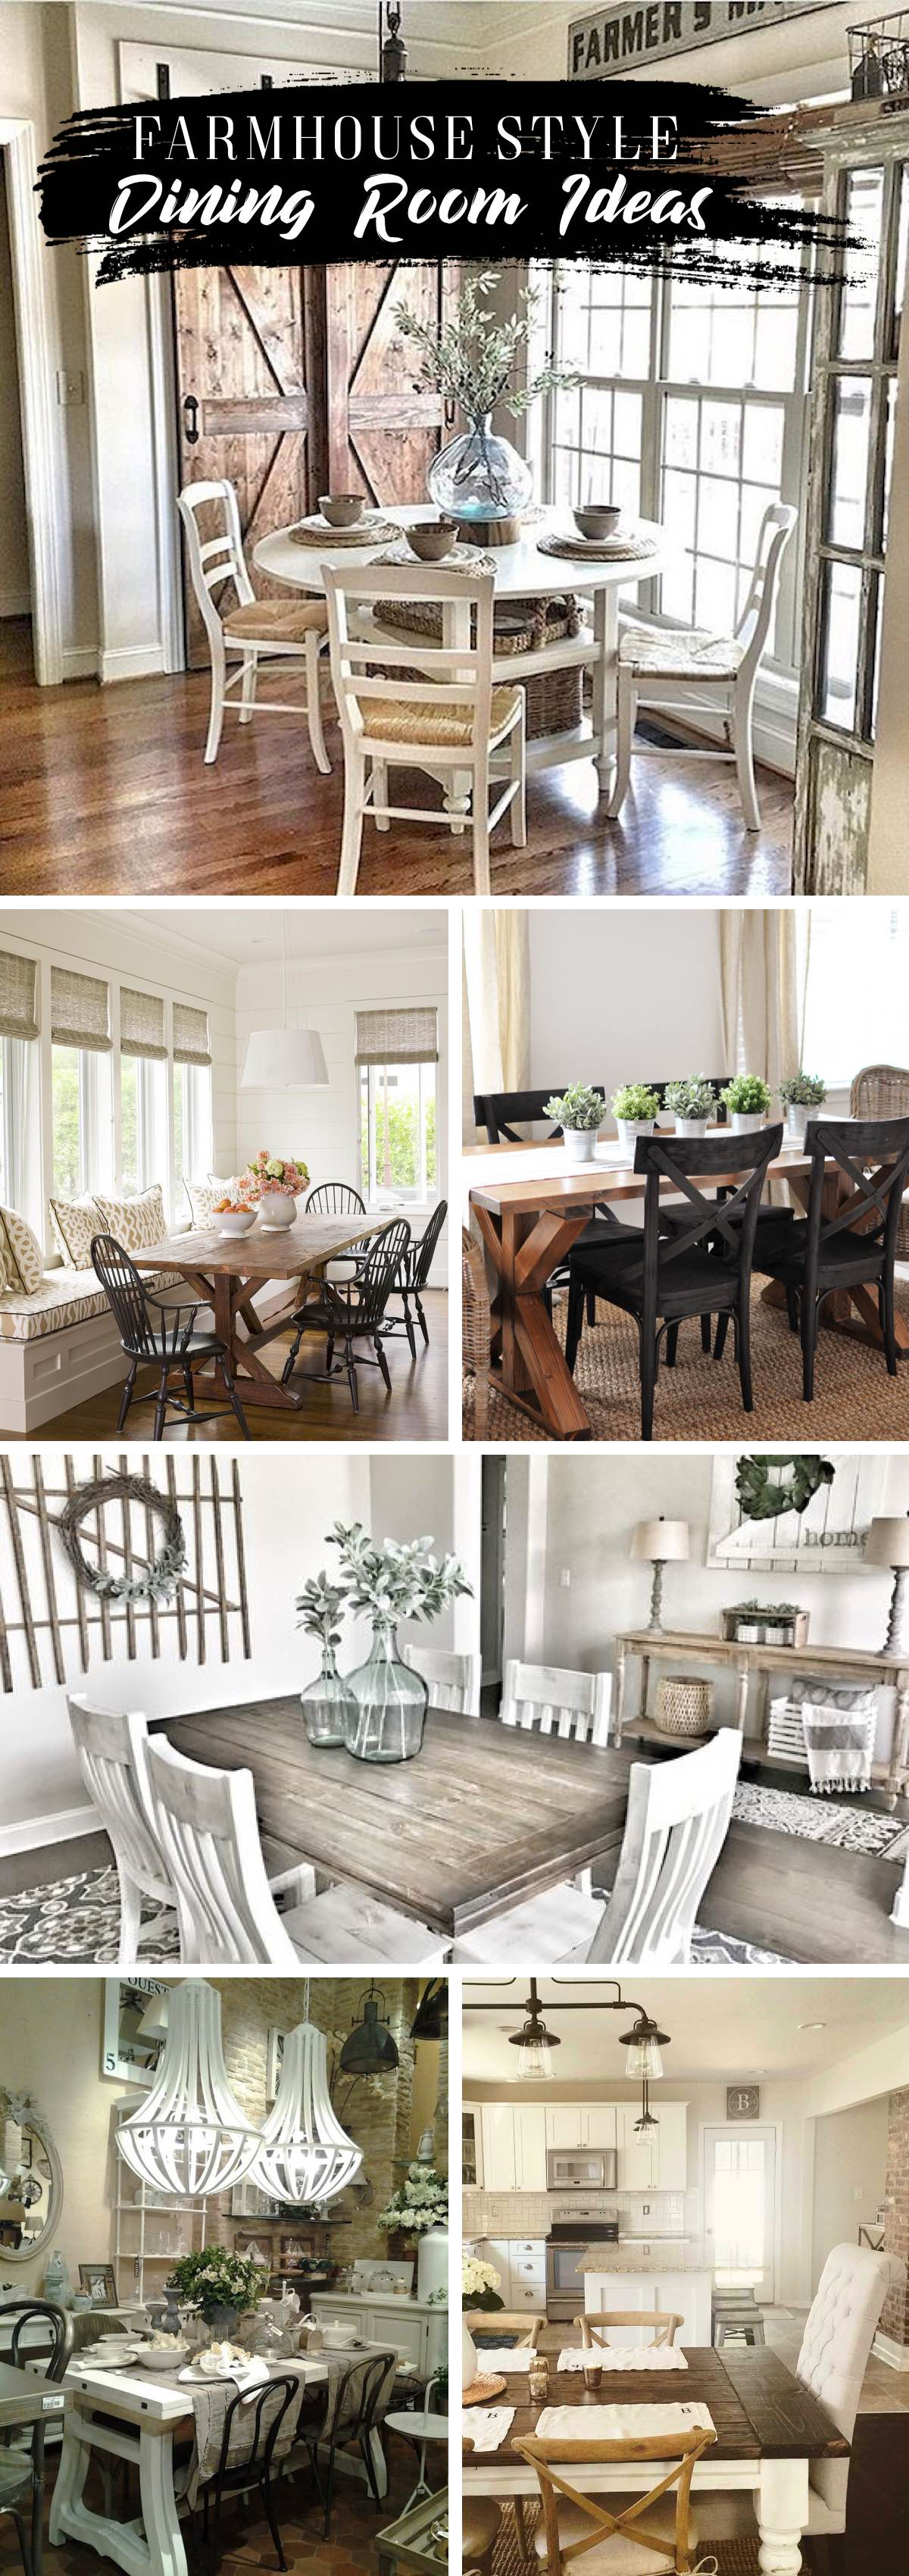 Farmhouse Style Dining Room Ideas You'll Want To Integrate Into Your Home